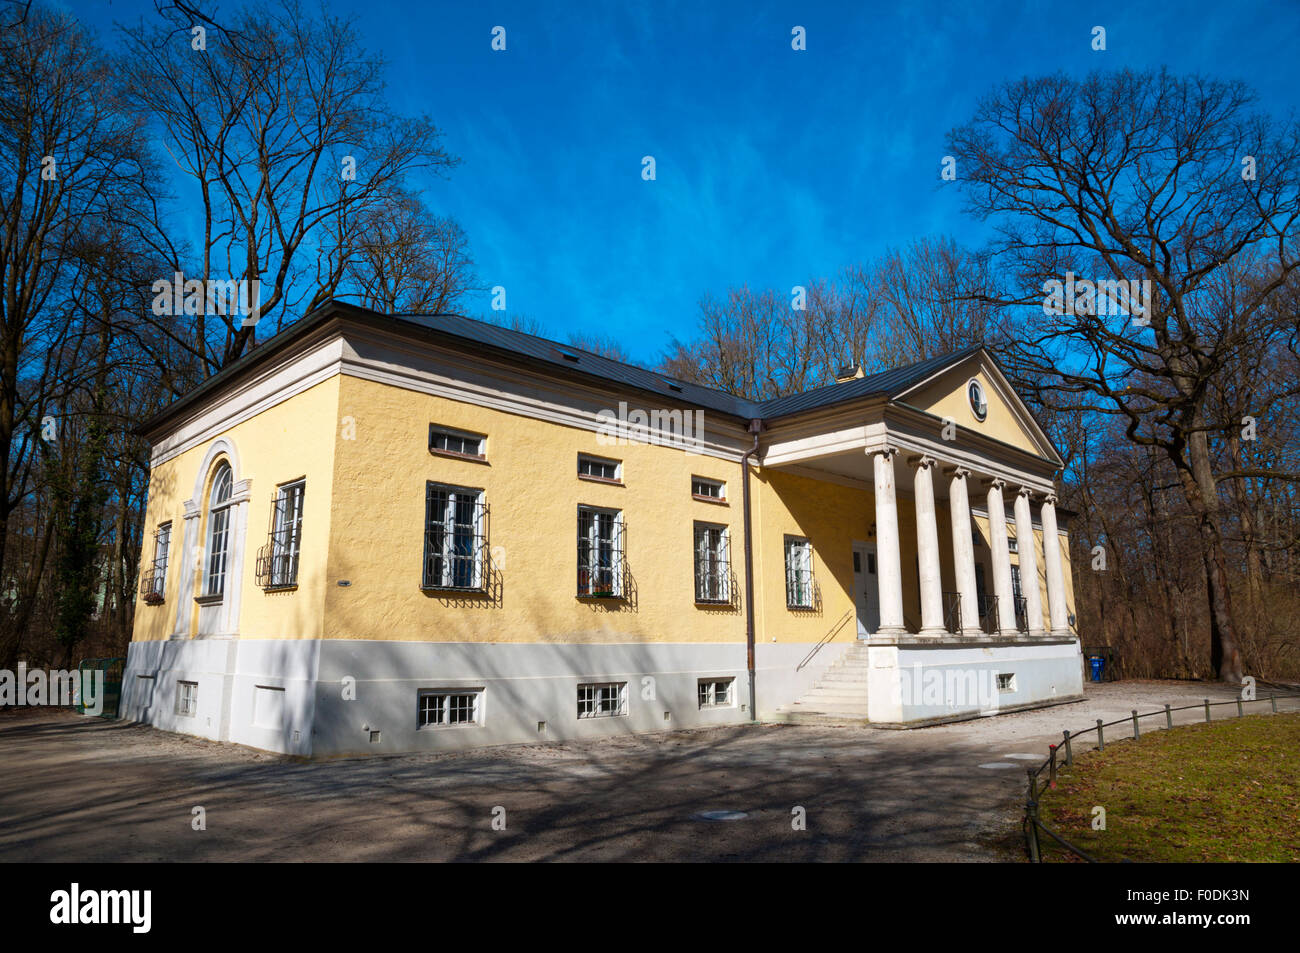 Englischer Style Rumford Stock Photos & Rumford Stock Images - Alamy